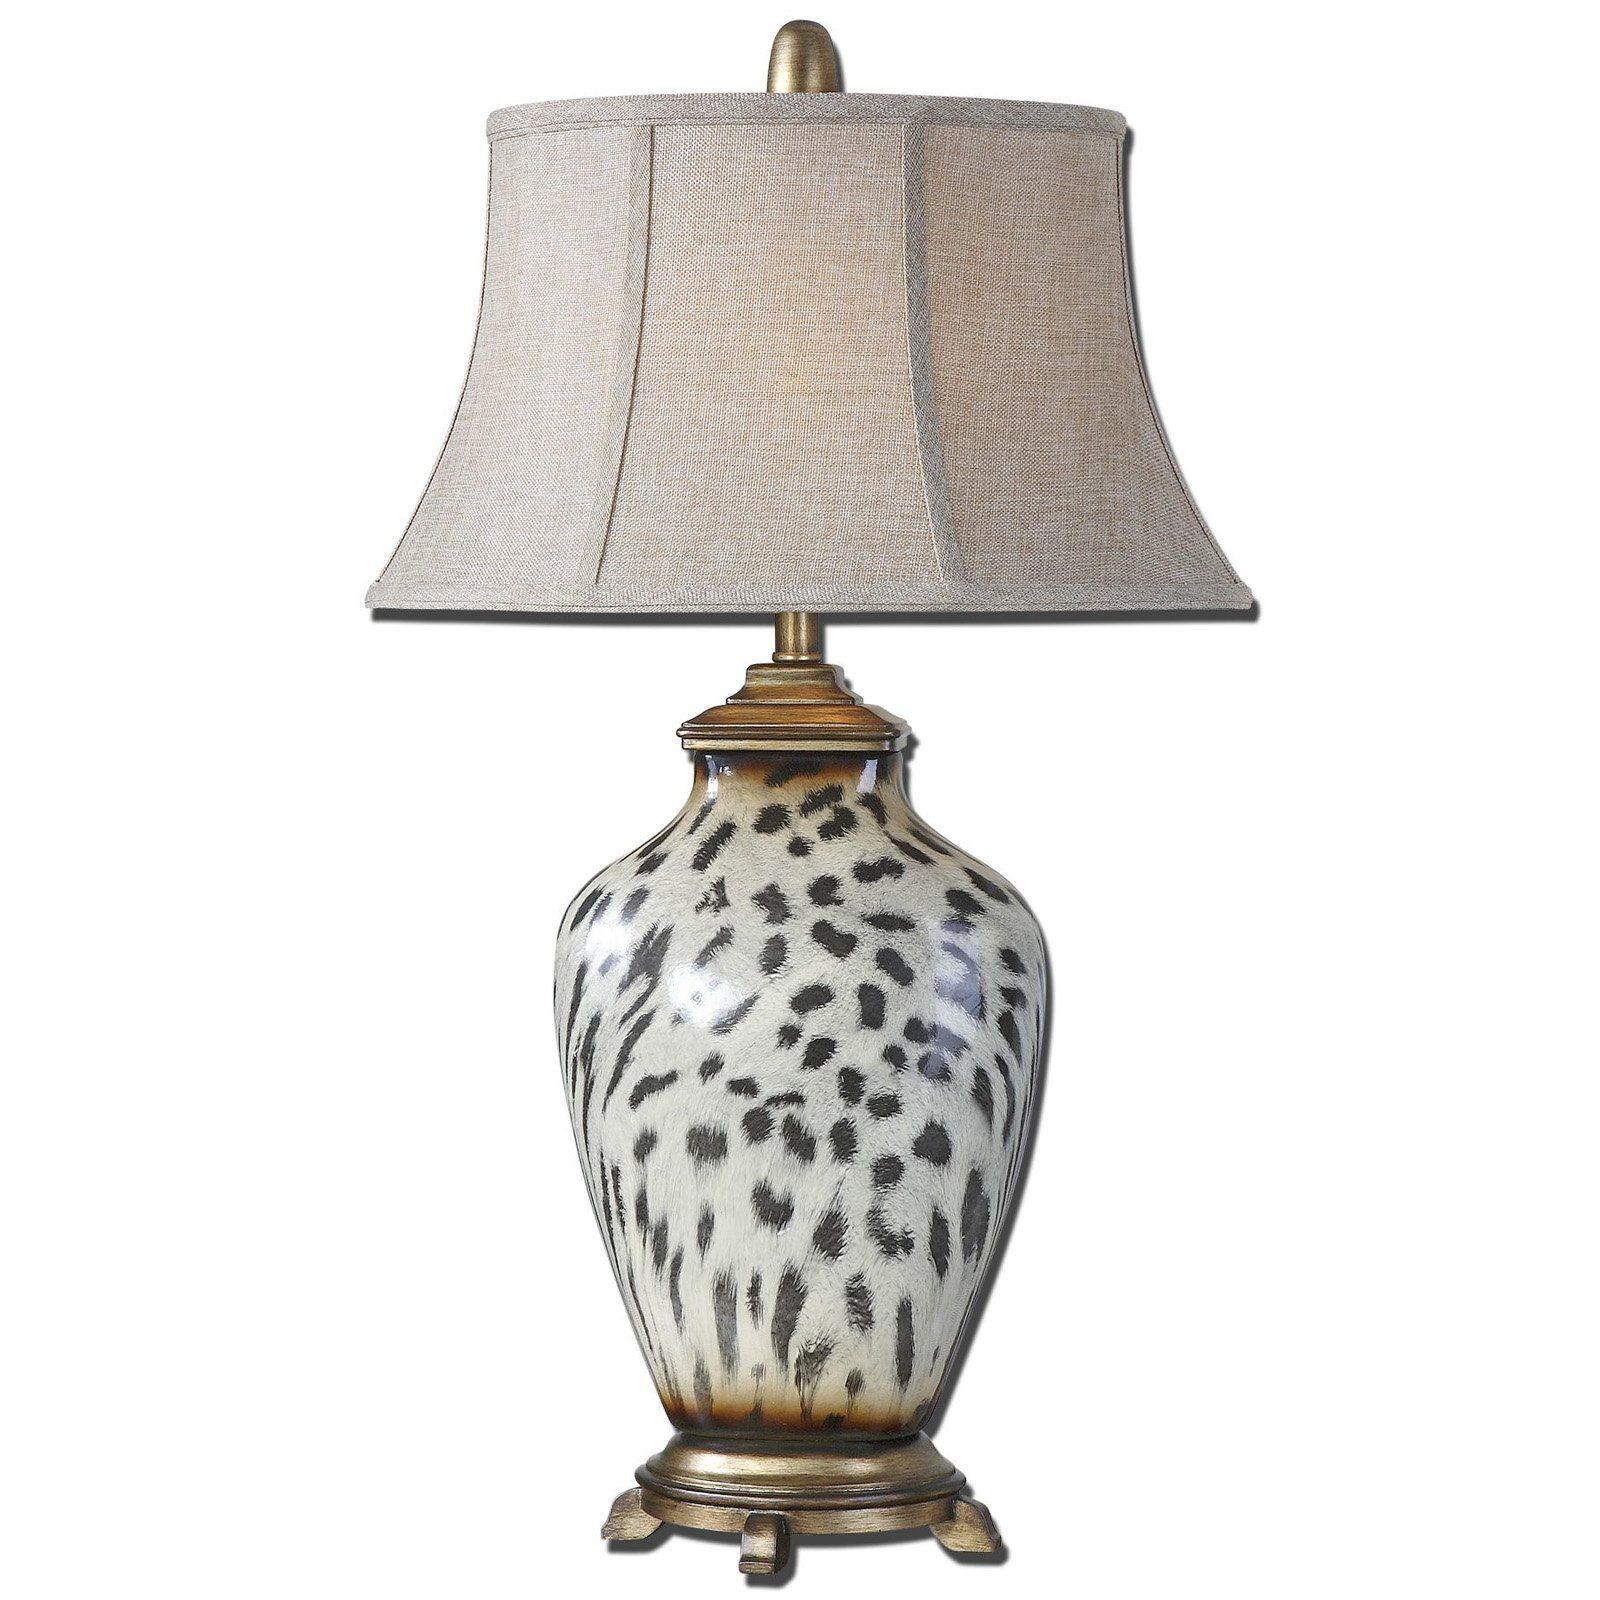 Uttermost 27489 malawi table lamp from hayneedle lighting off malawi cheetah print table lamp by uttermost burnished cheetah print over a ceramic base with heavily antiqued silver details geotapseo Gallery